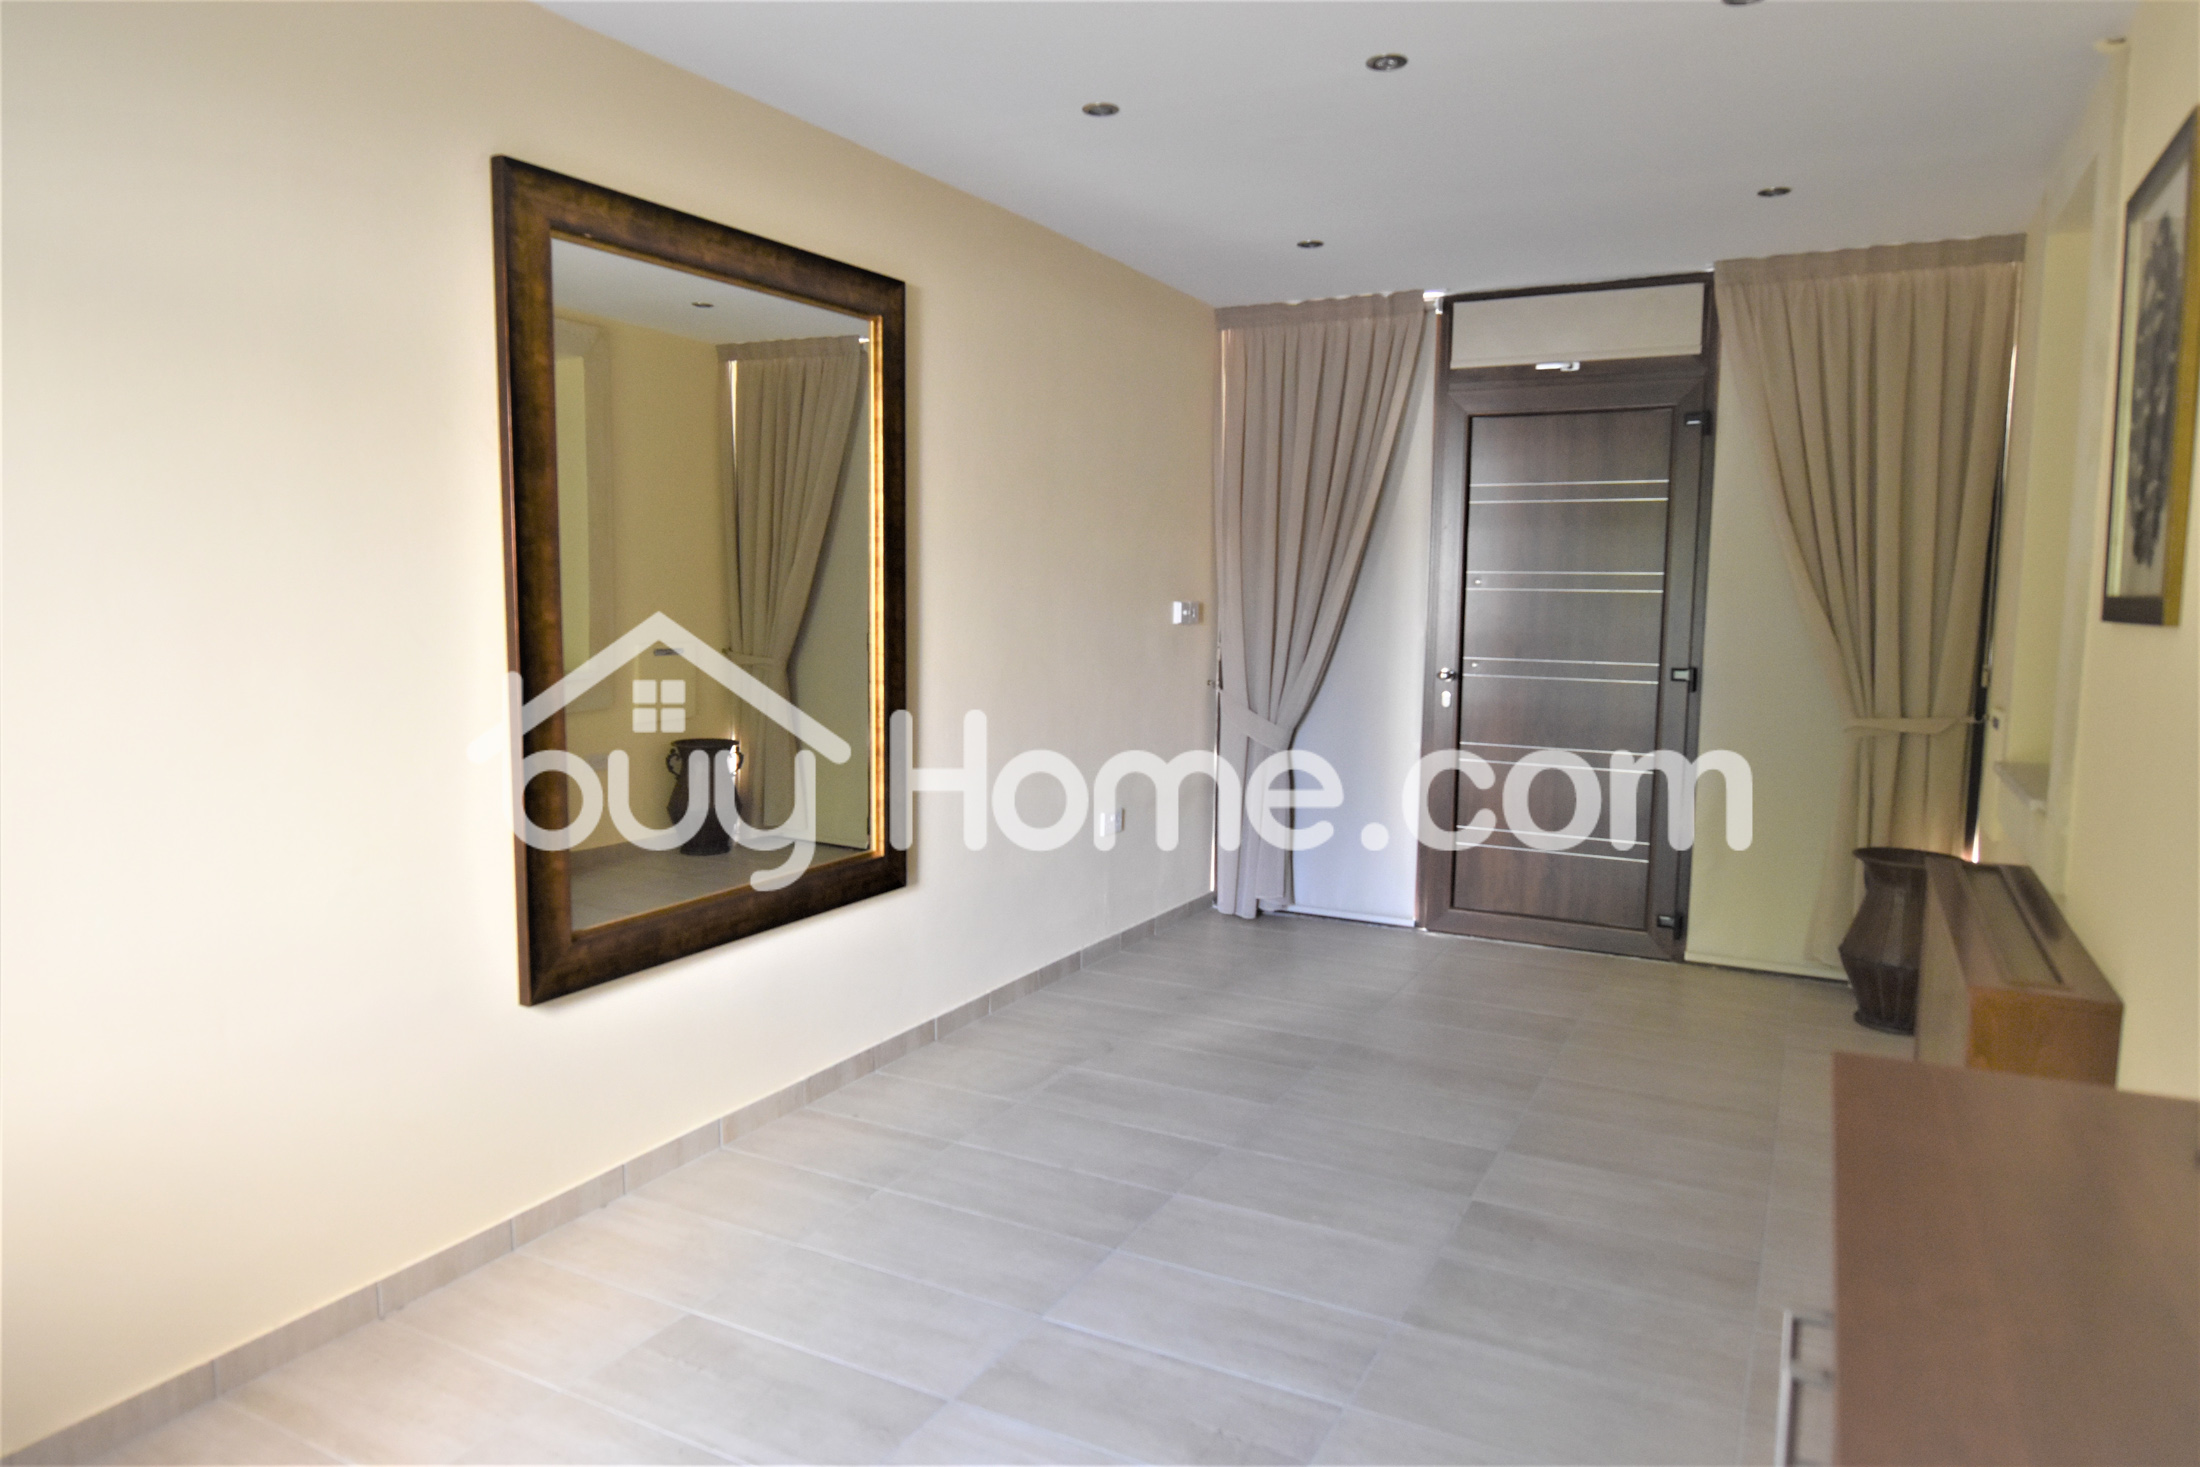 4 Bedroom House | BuyHome